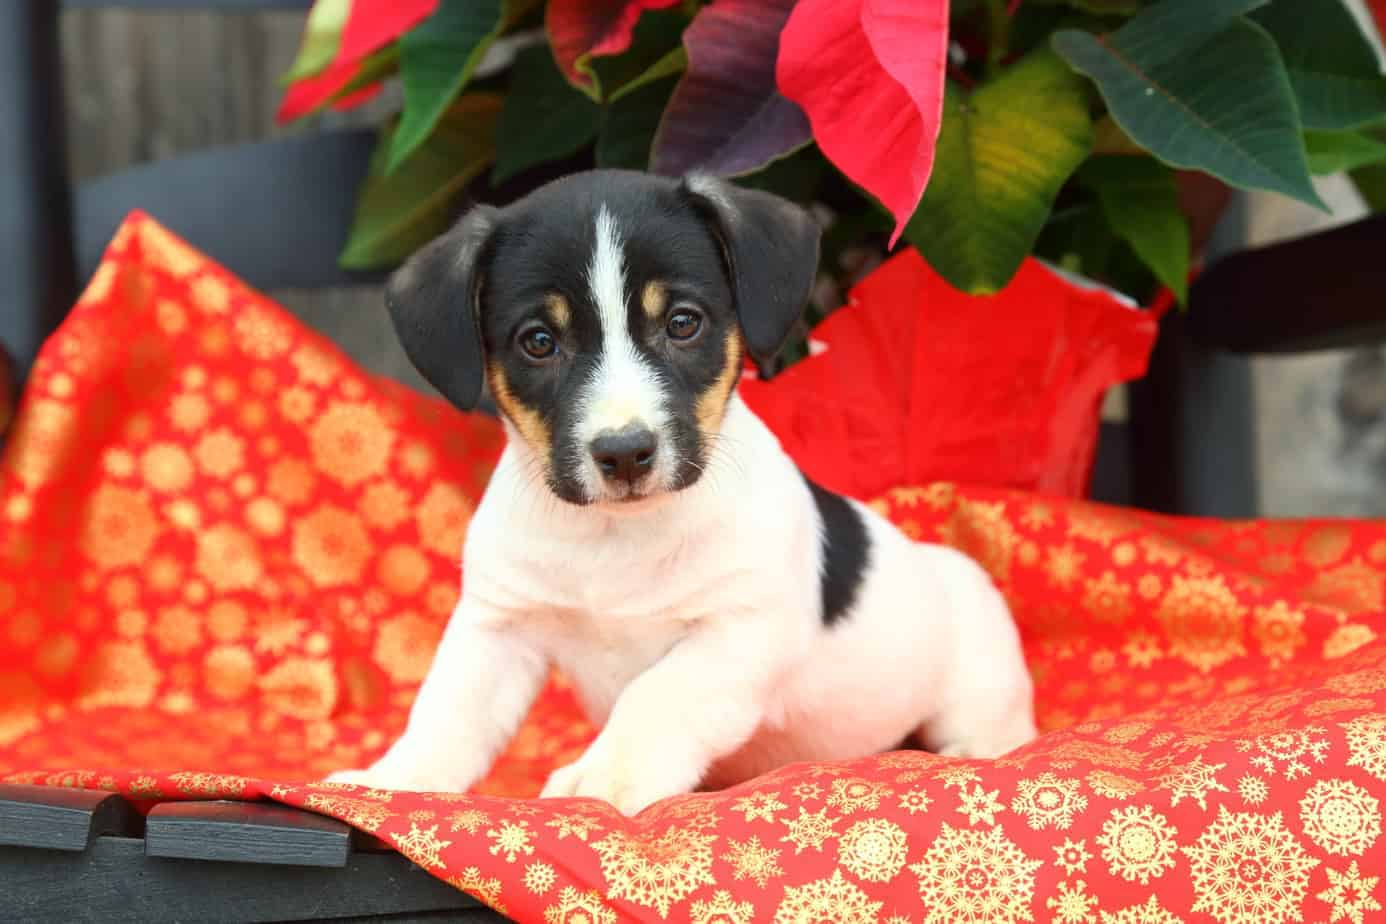 Decorate with dog-friendly plants and keep poinsettias out of reach.